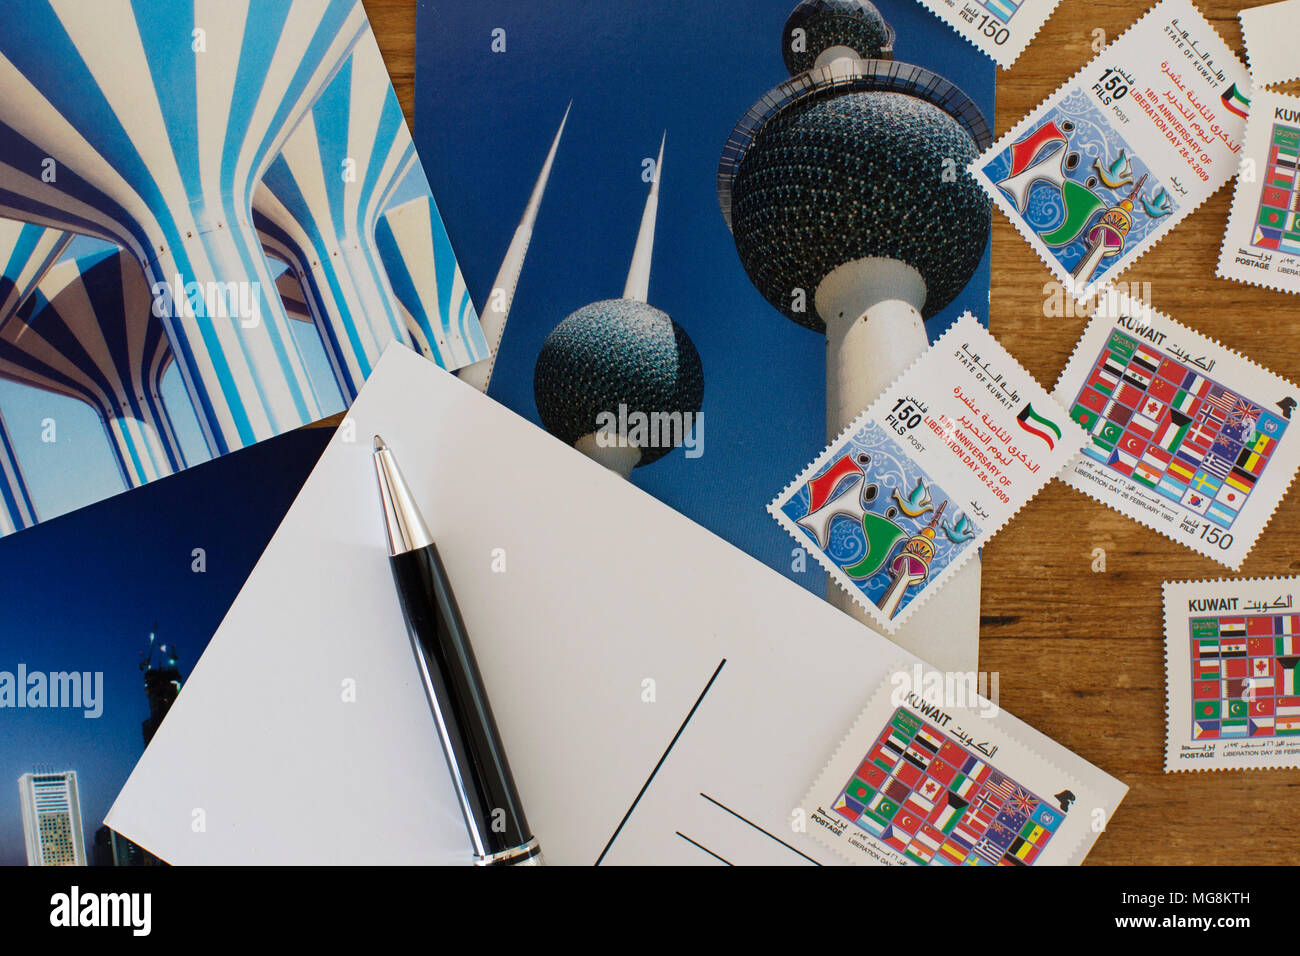 Kuwait postage stamps and postcards - Stock Image